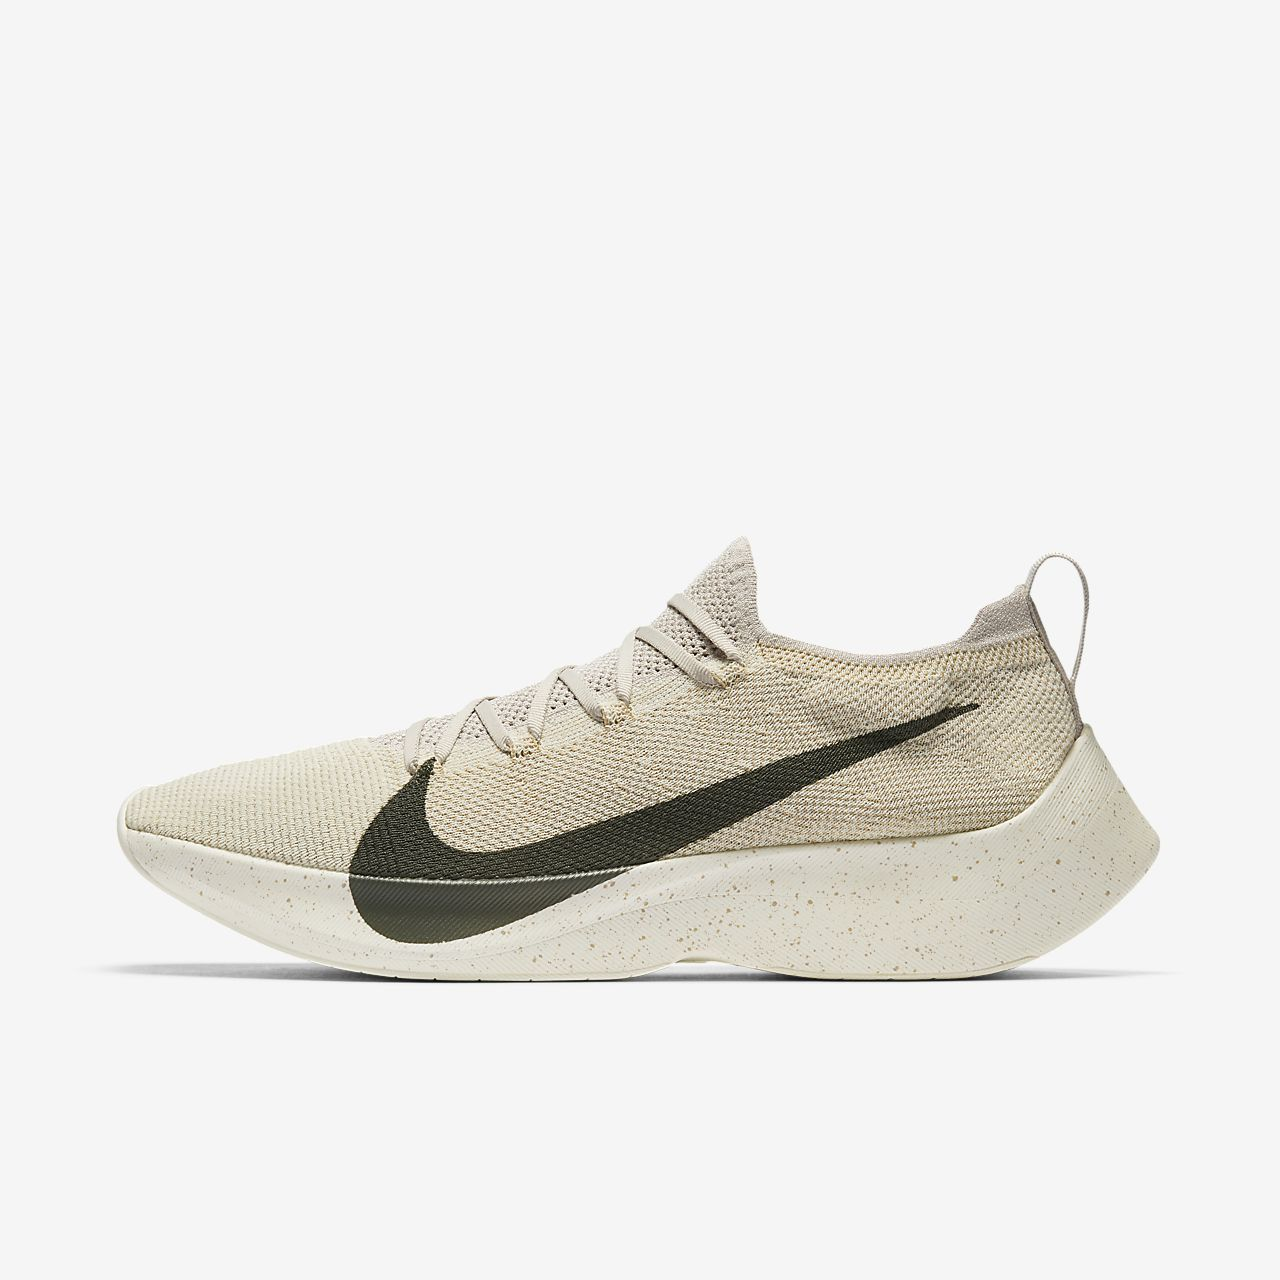 Chaussure Nike React Vapor Street Flyknit pour Homme